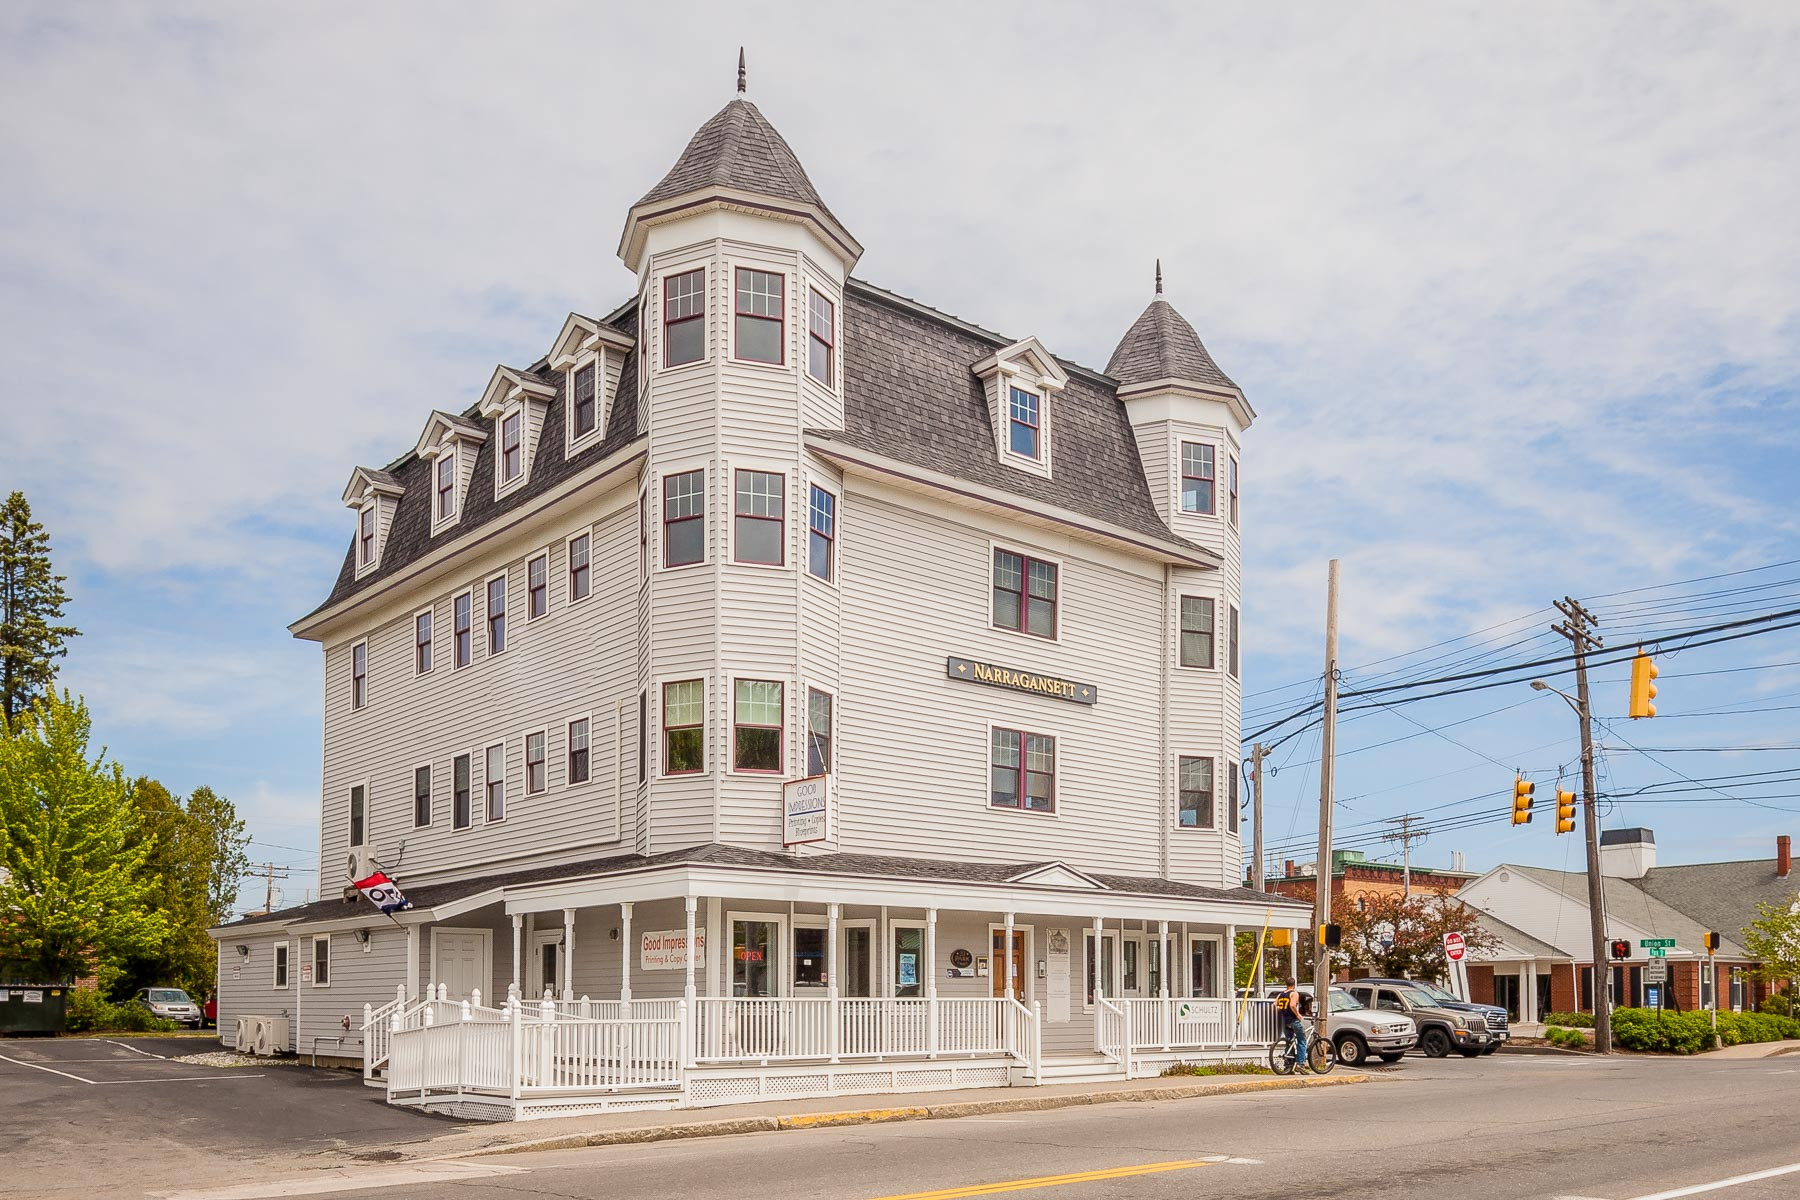 Commercial for Sale at The Narragansett House 33 Park Street Unit 201 Rockland, Maine 04841 United States